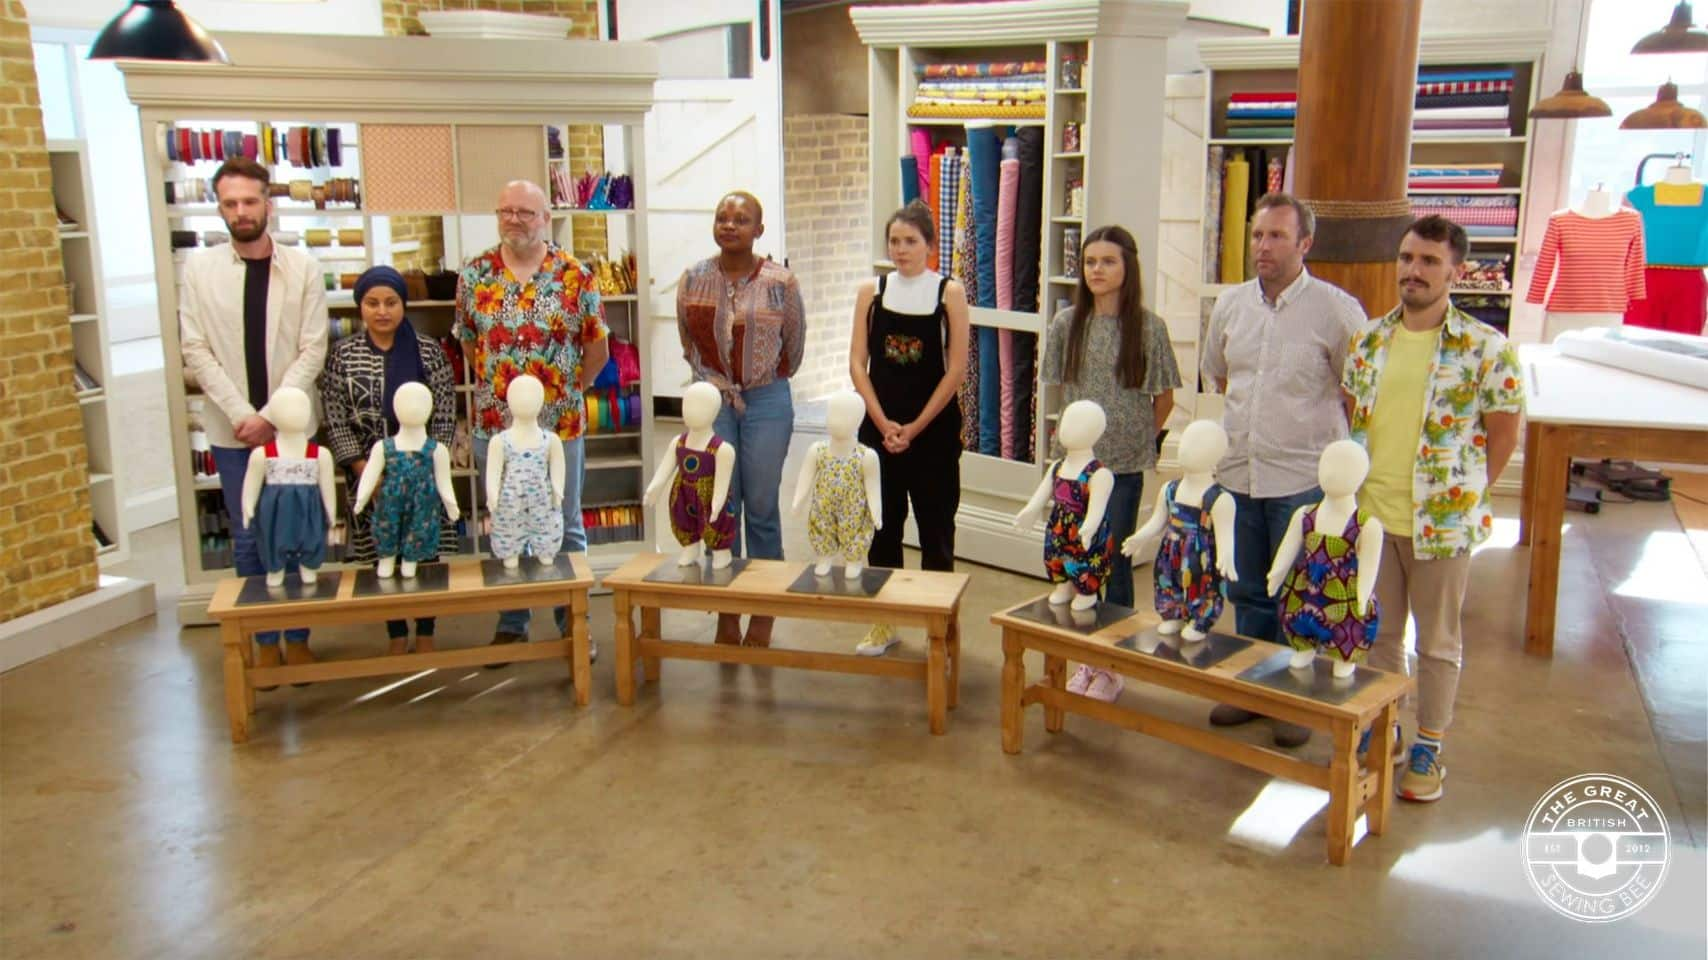 The contestants with their finished romper suits